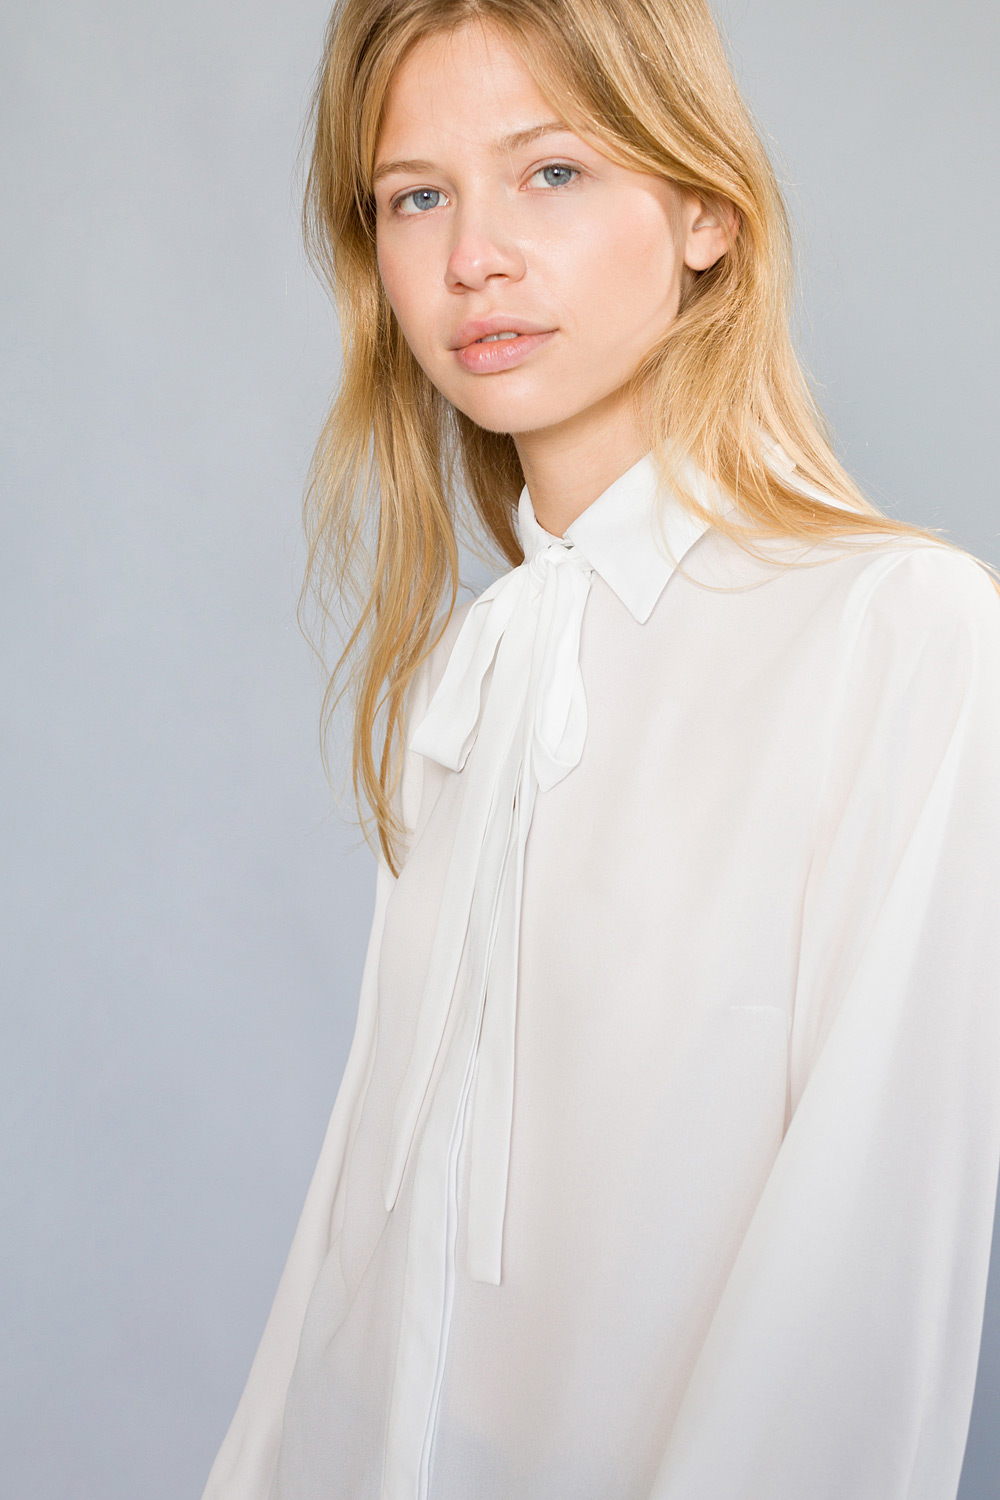 Bow-tie shirt with classic collar